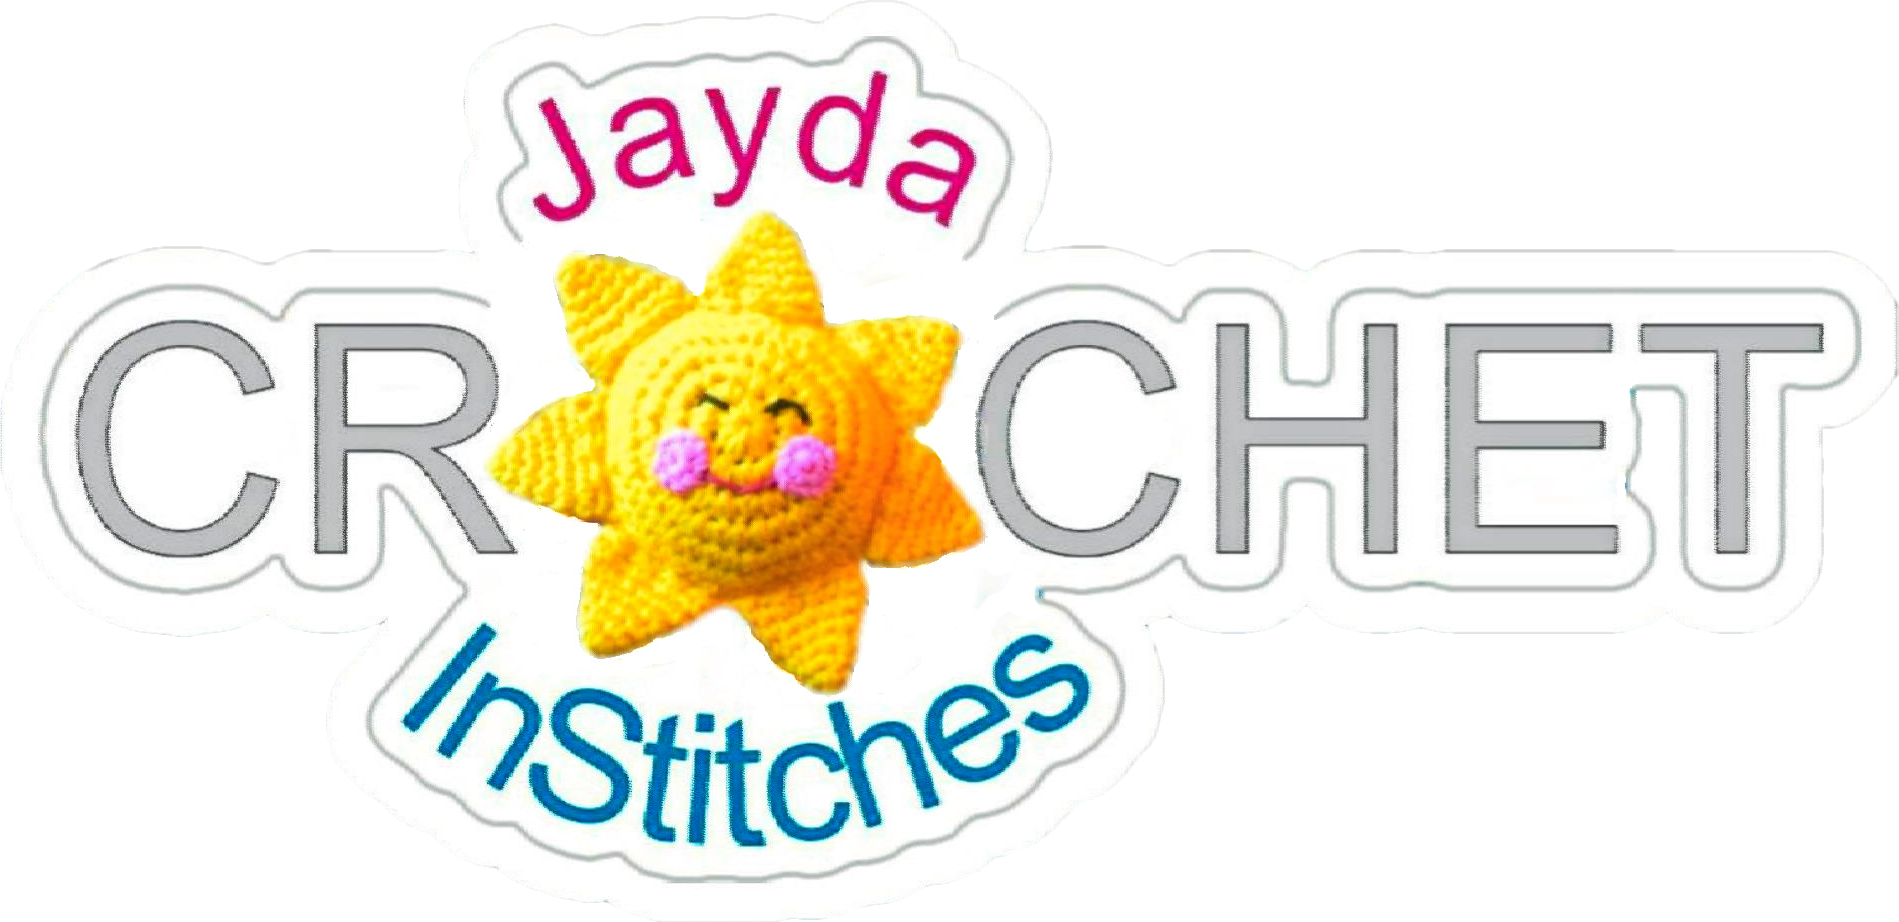 Jayda InStitches Crochet